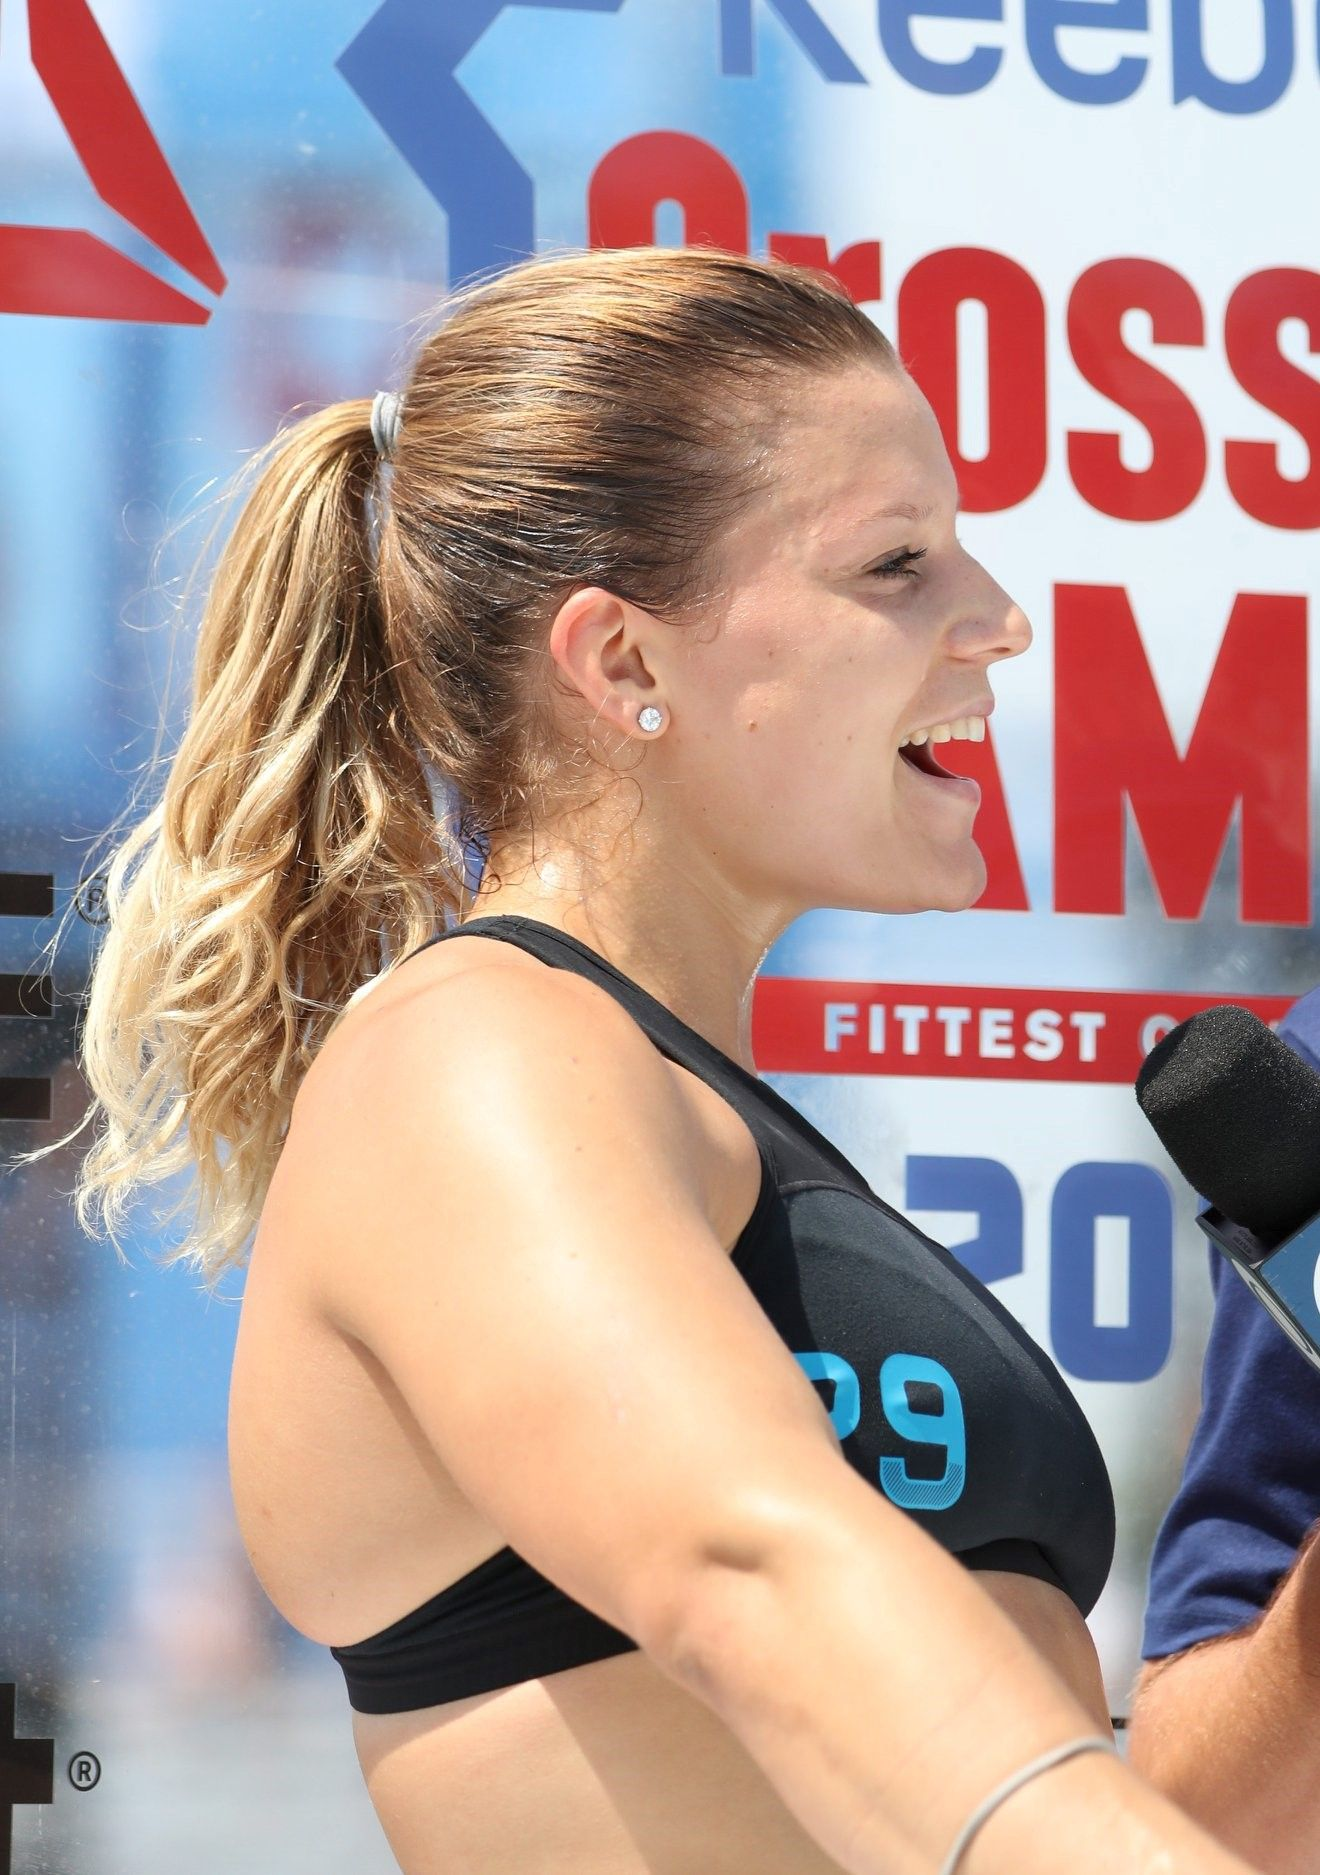 Laura Horvath 2018 CrossFit Games, 2nd Place Crossfit